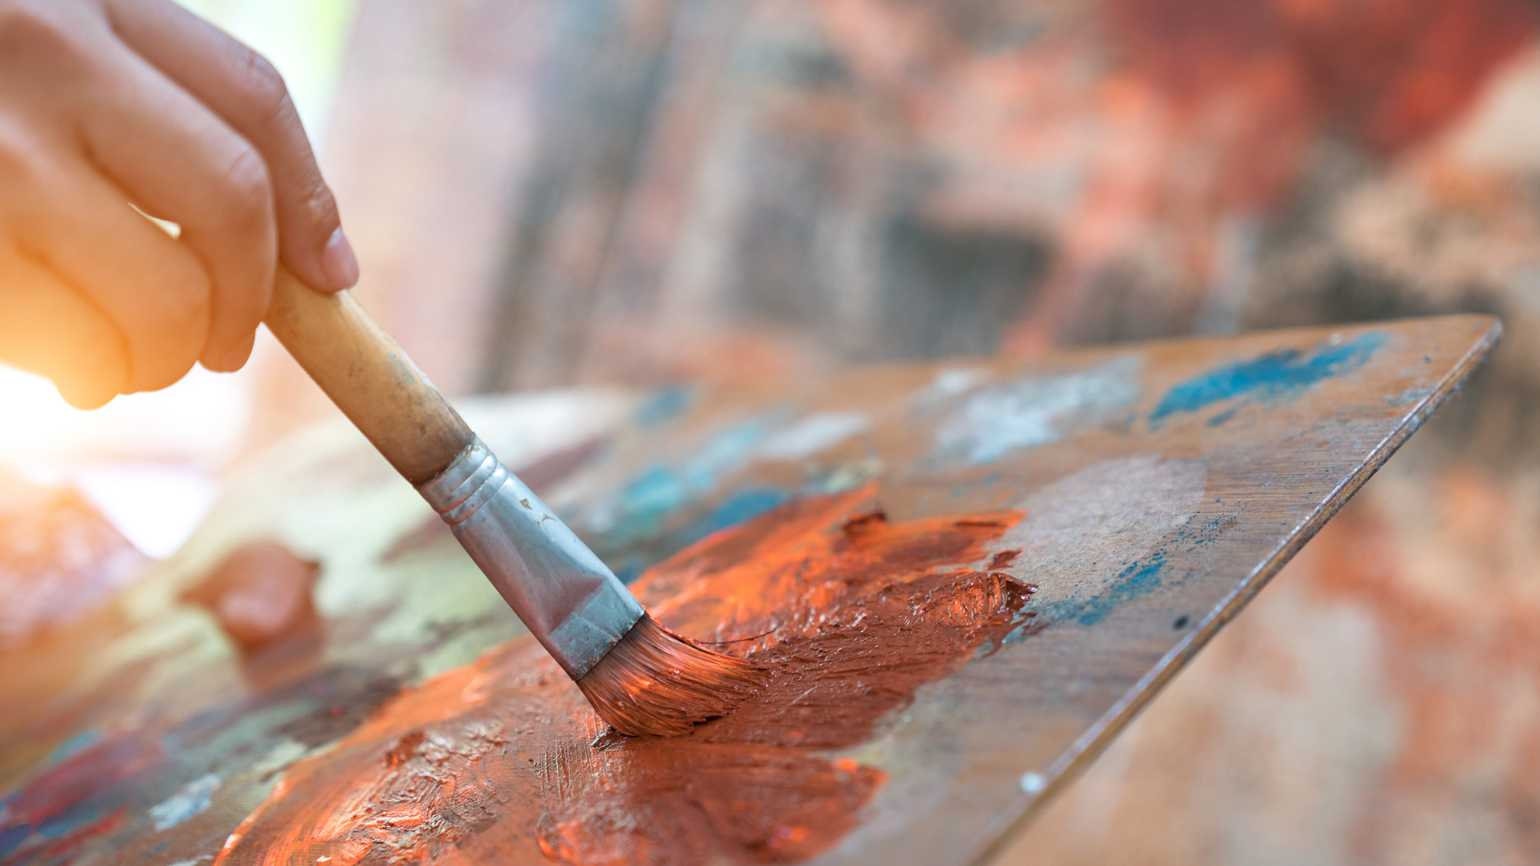 A close up of an artist painting on canvas.